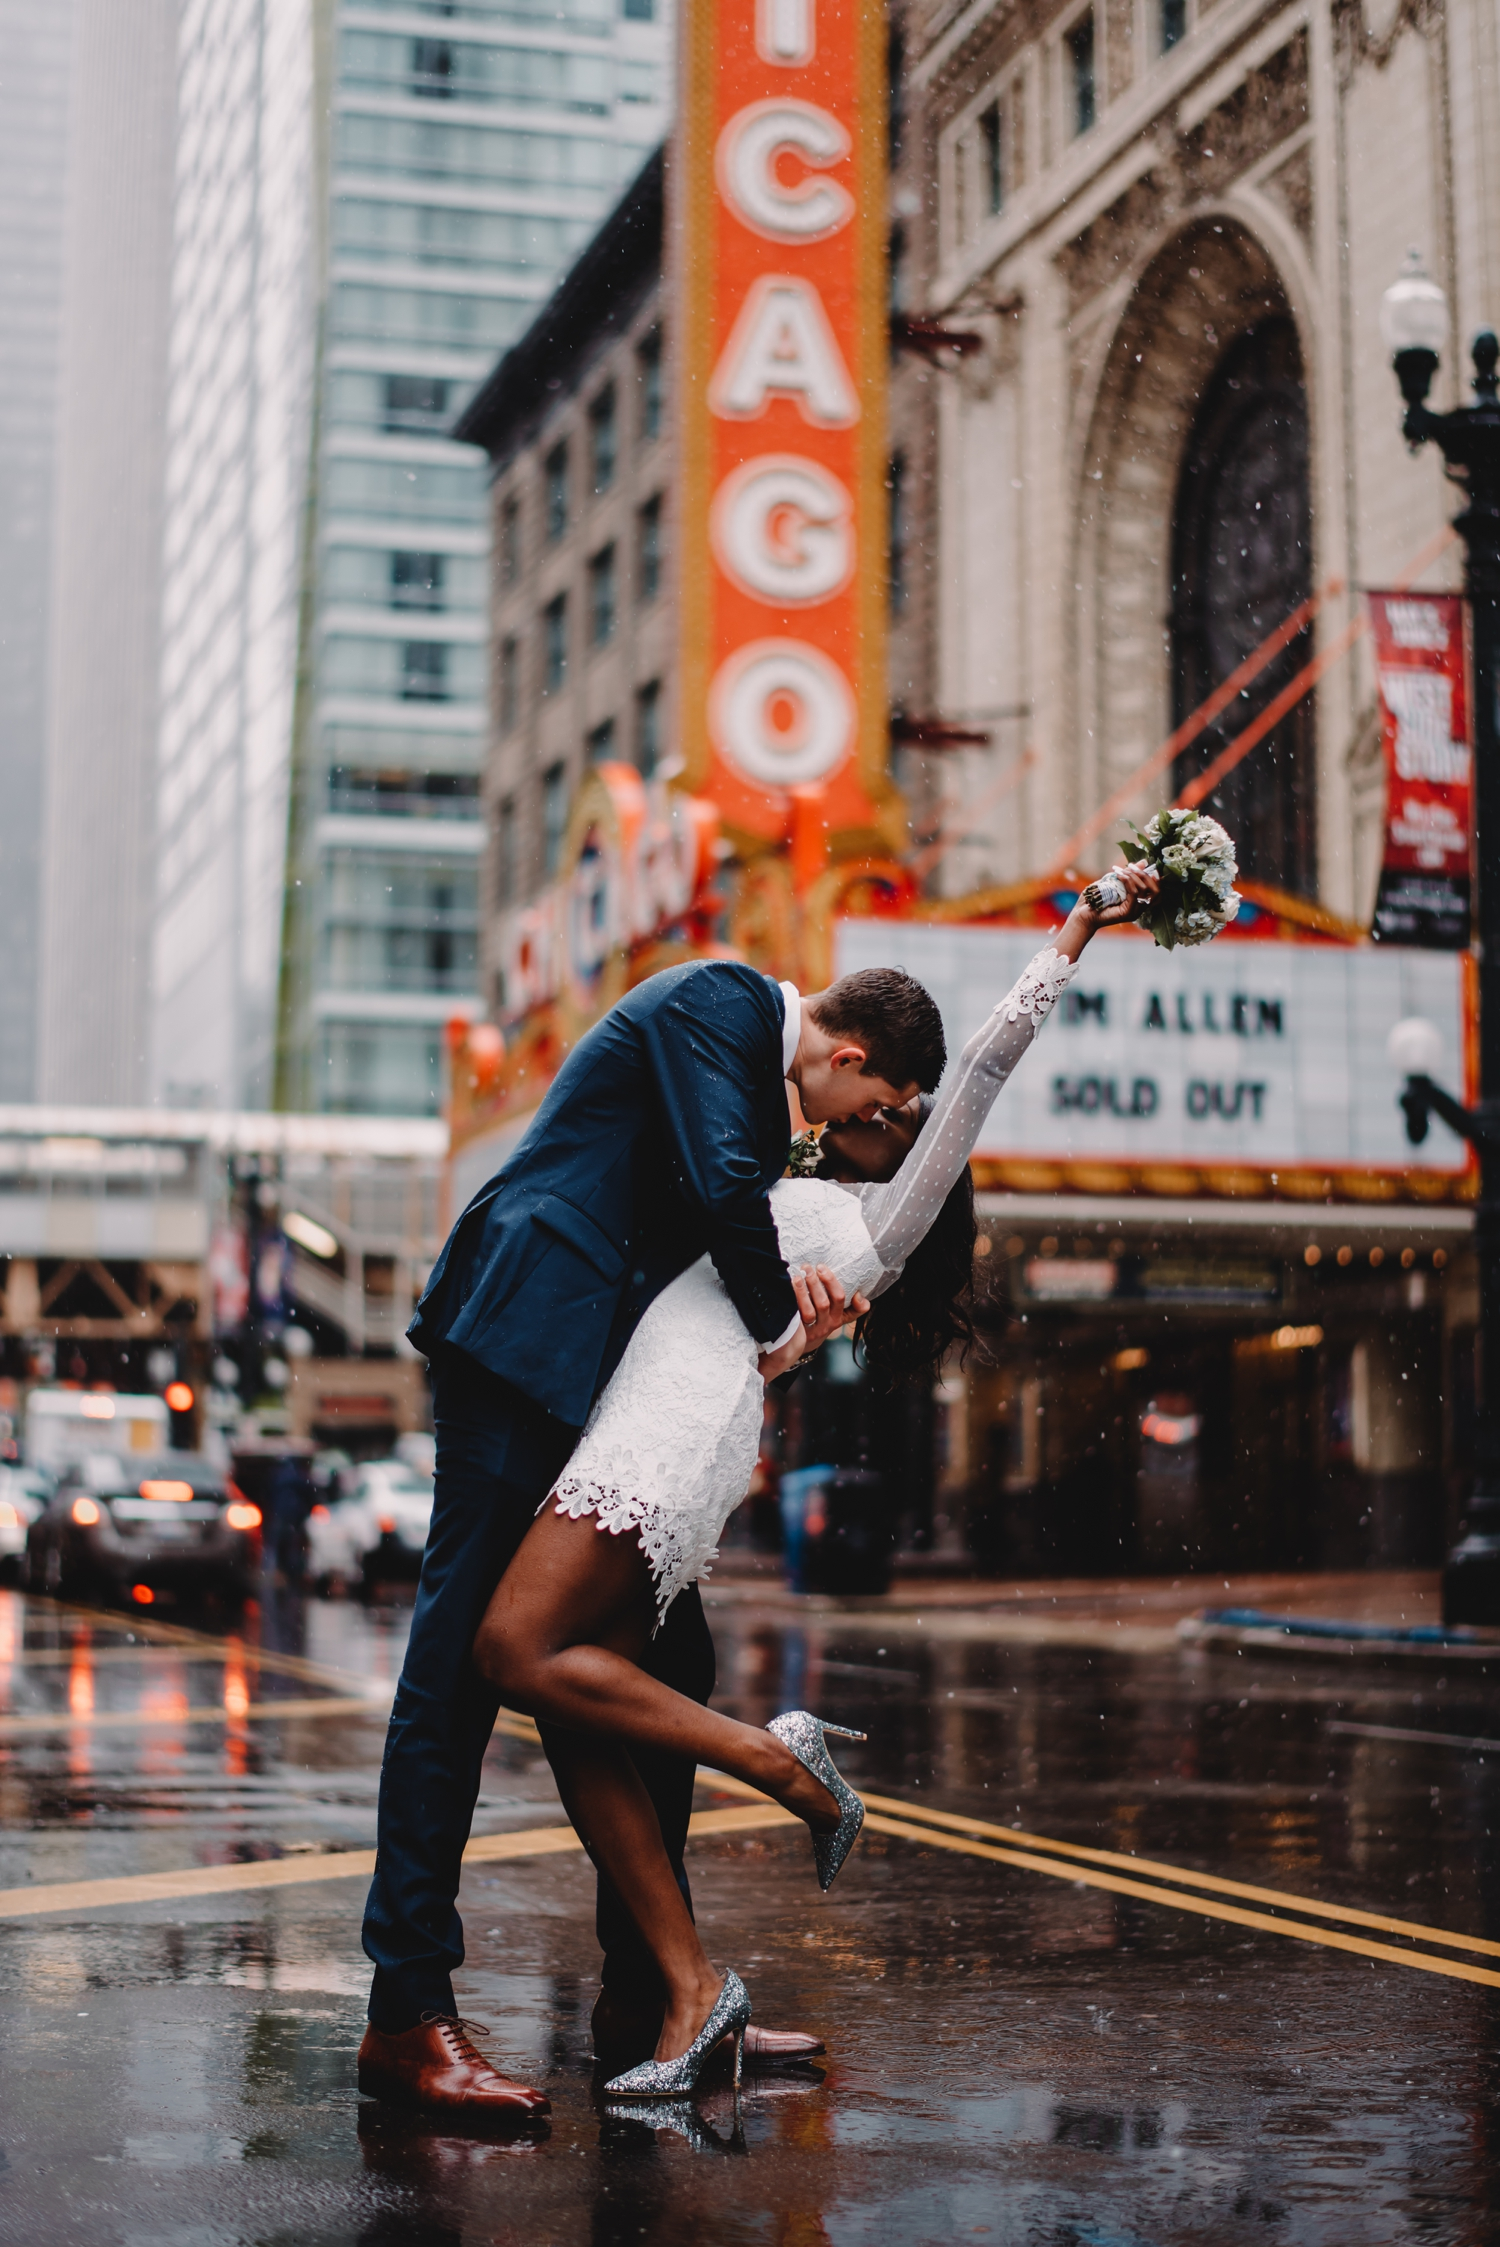 Chicago City Hall Wedding Photographer - The Adamkovi, bride and groom in front of the Chicago theater in the middle of the street, kiss dip, mixed couple